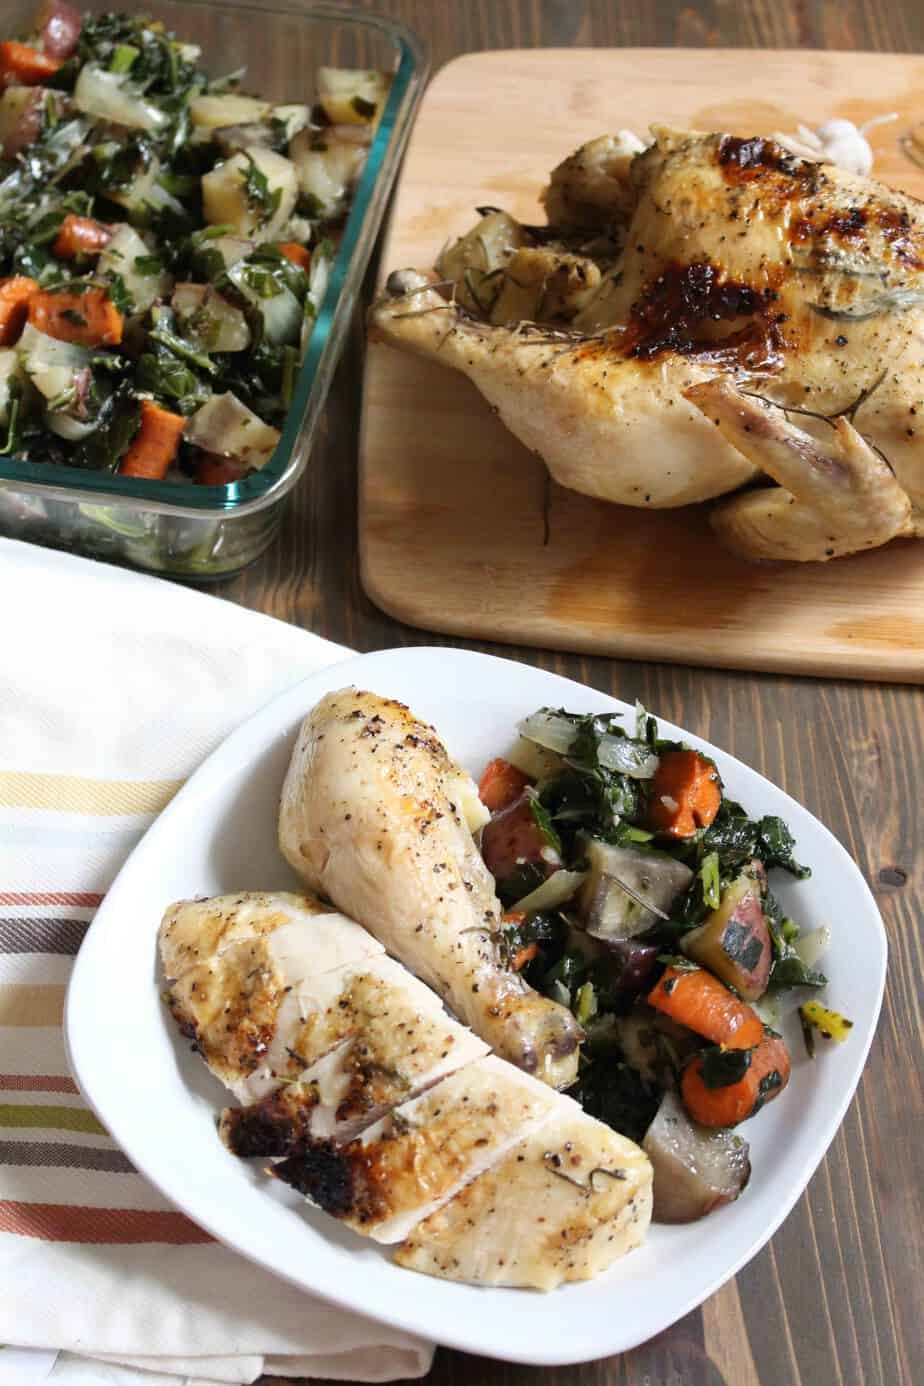 Slow Cooker Rosemary Chicken with Potatoes, Carrots, & Collards | Frugal Nutrition